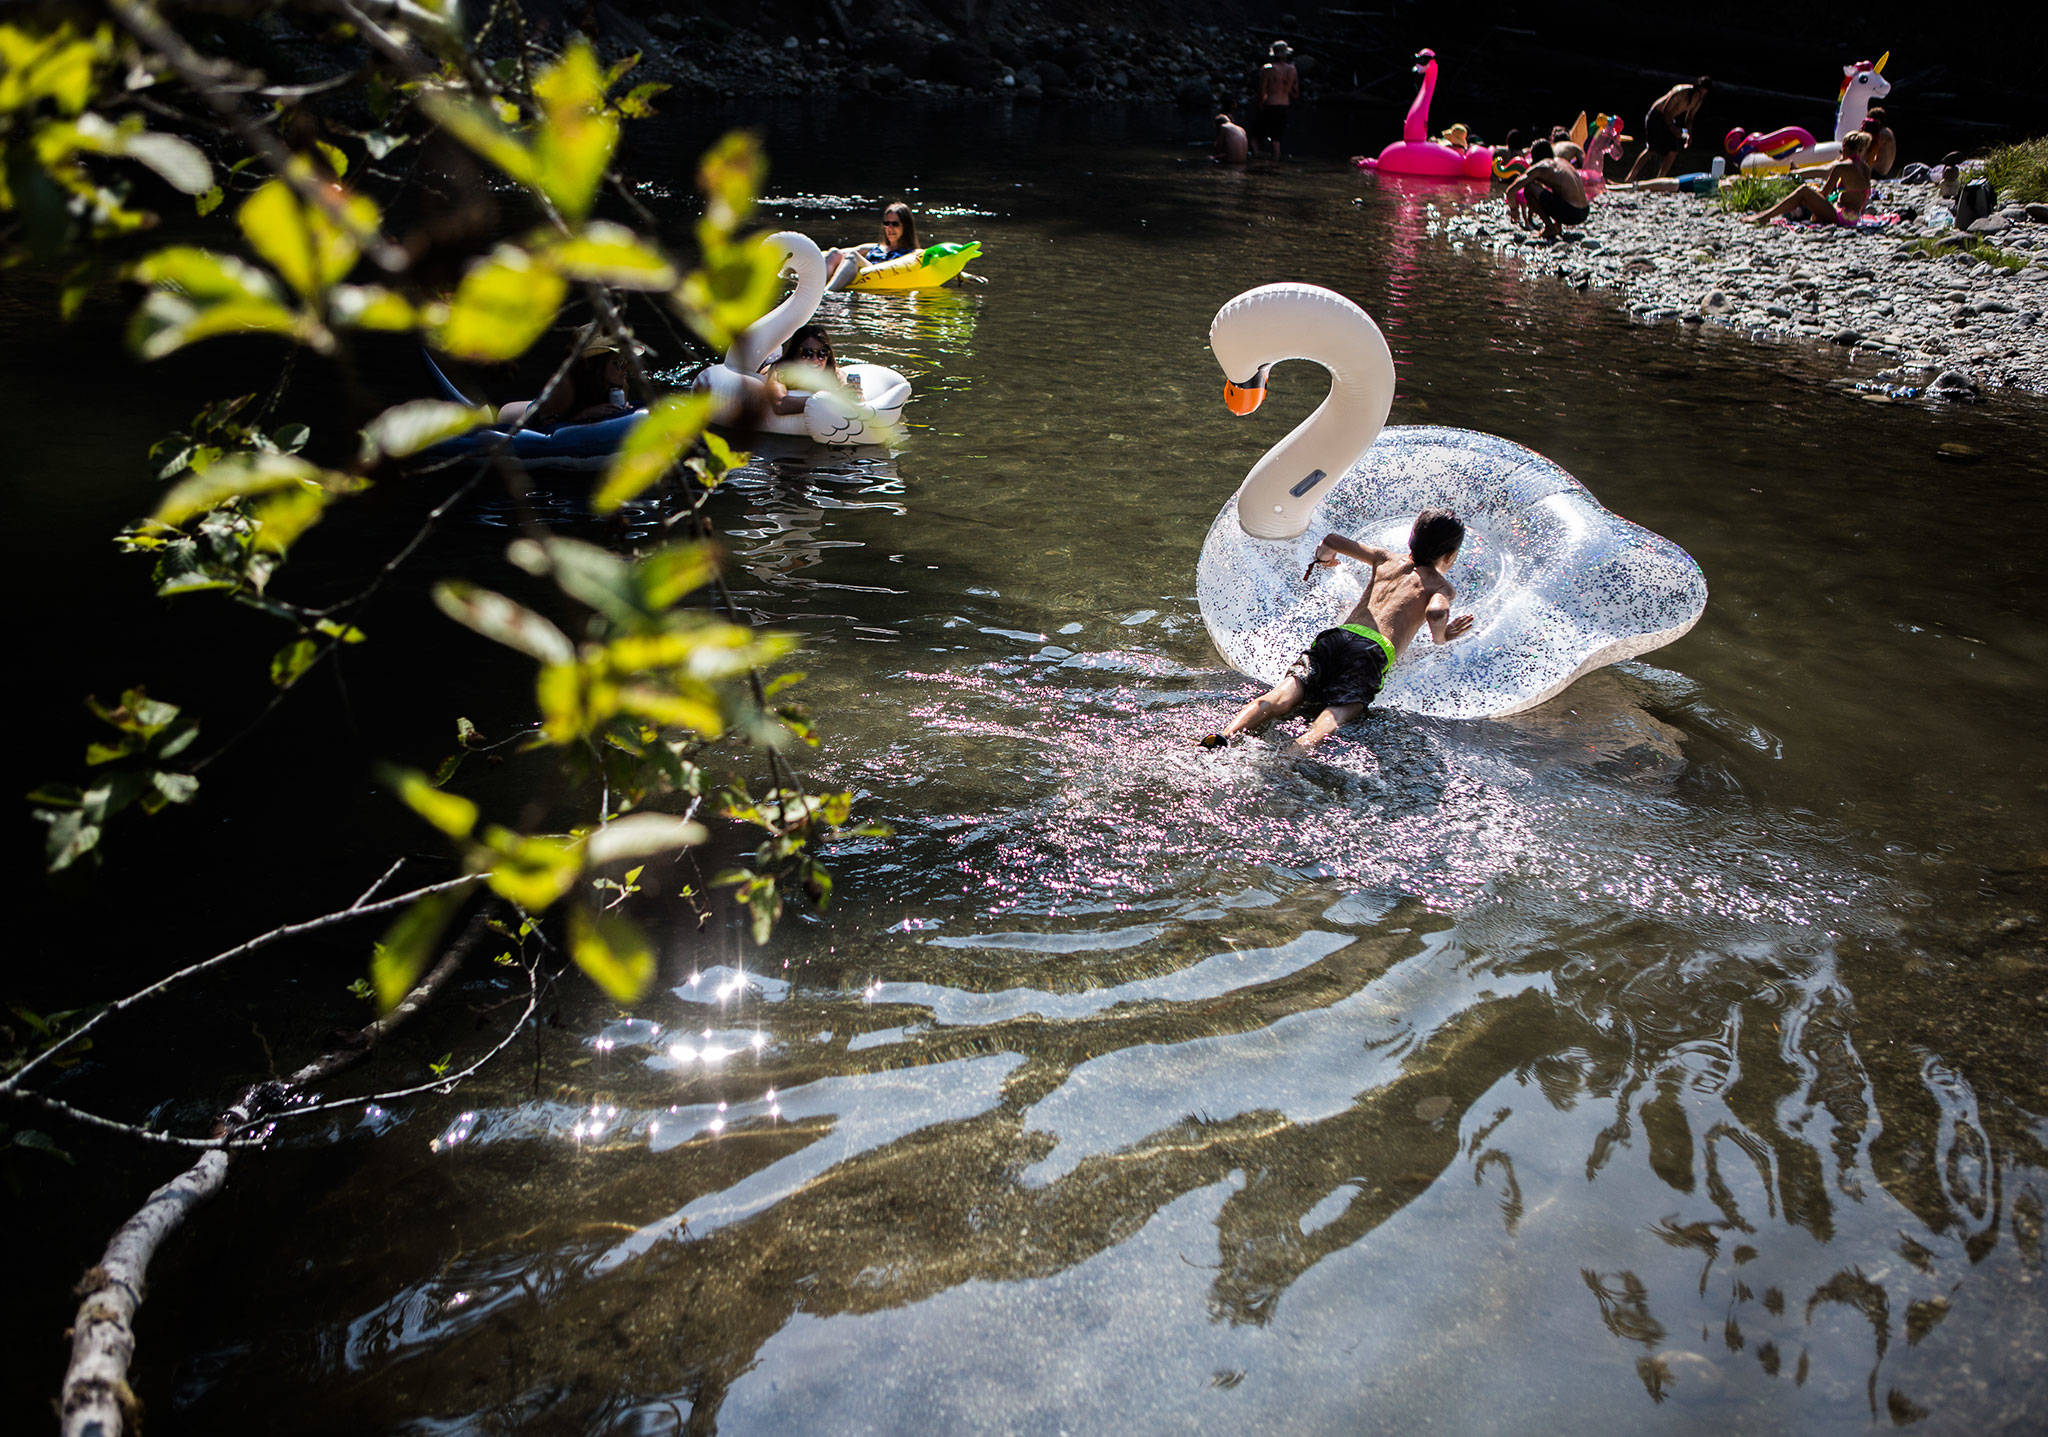 People enjoy the river during the third day of Summer Meltdown on Saturday, Aug. 3, 2019 in Darrington, Wash. (Olivia Vanni / The Herald)